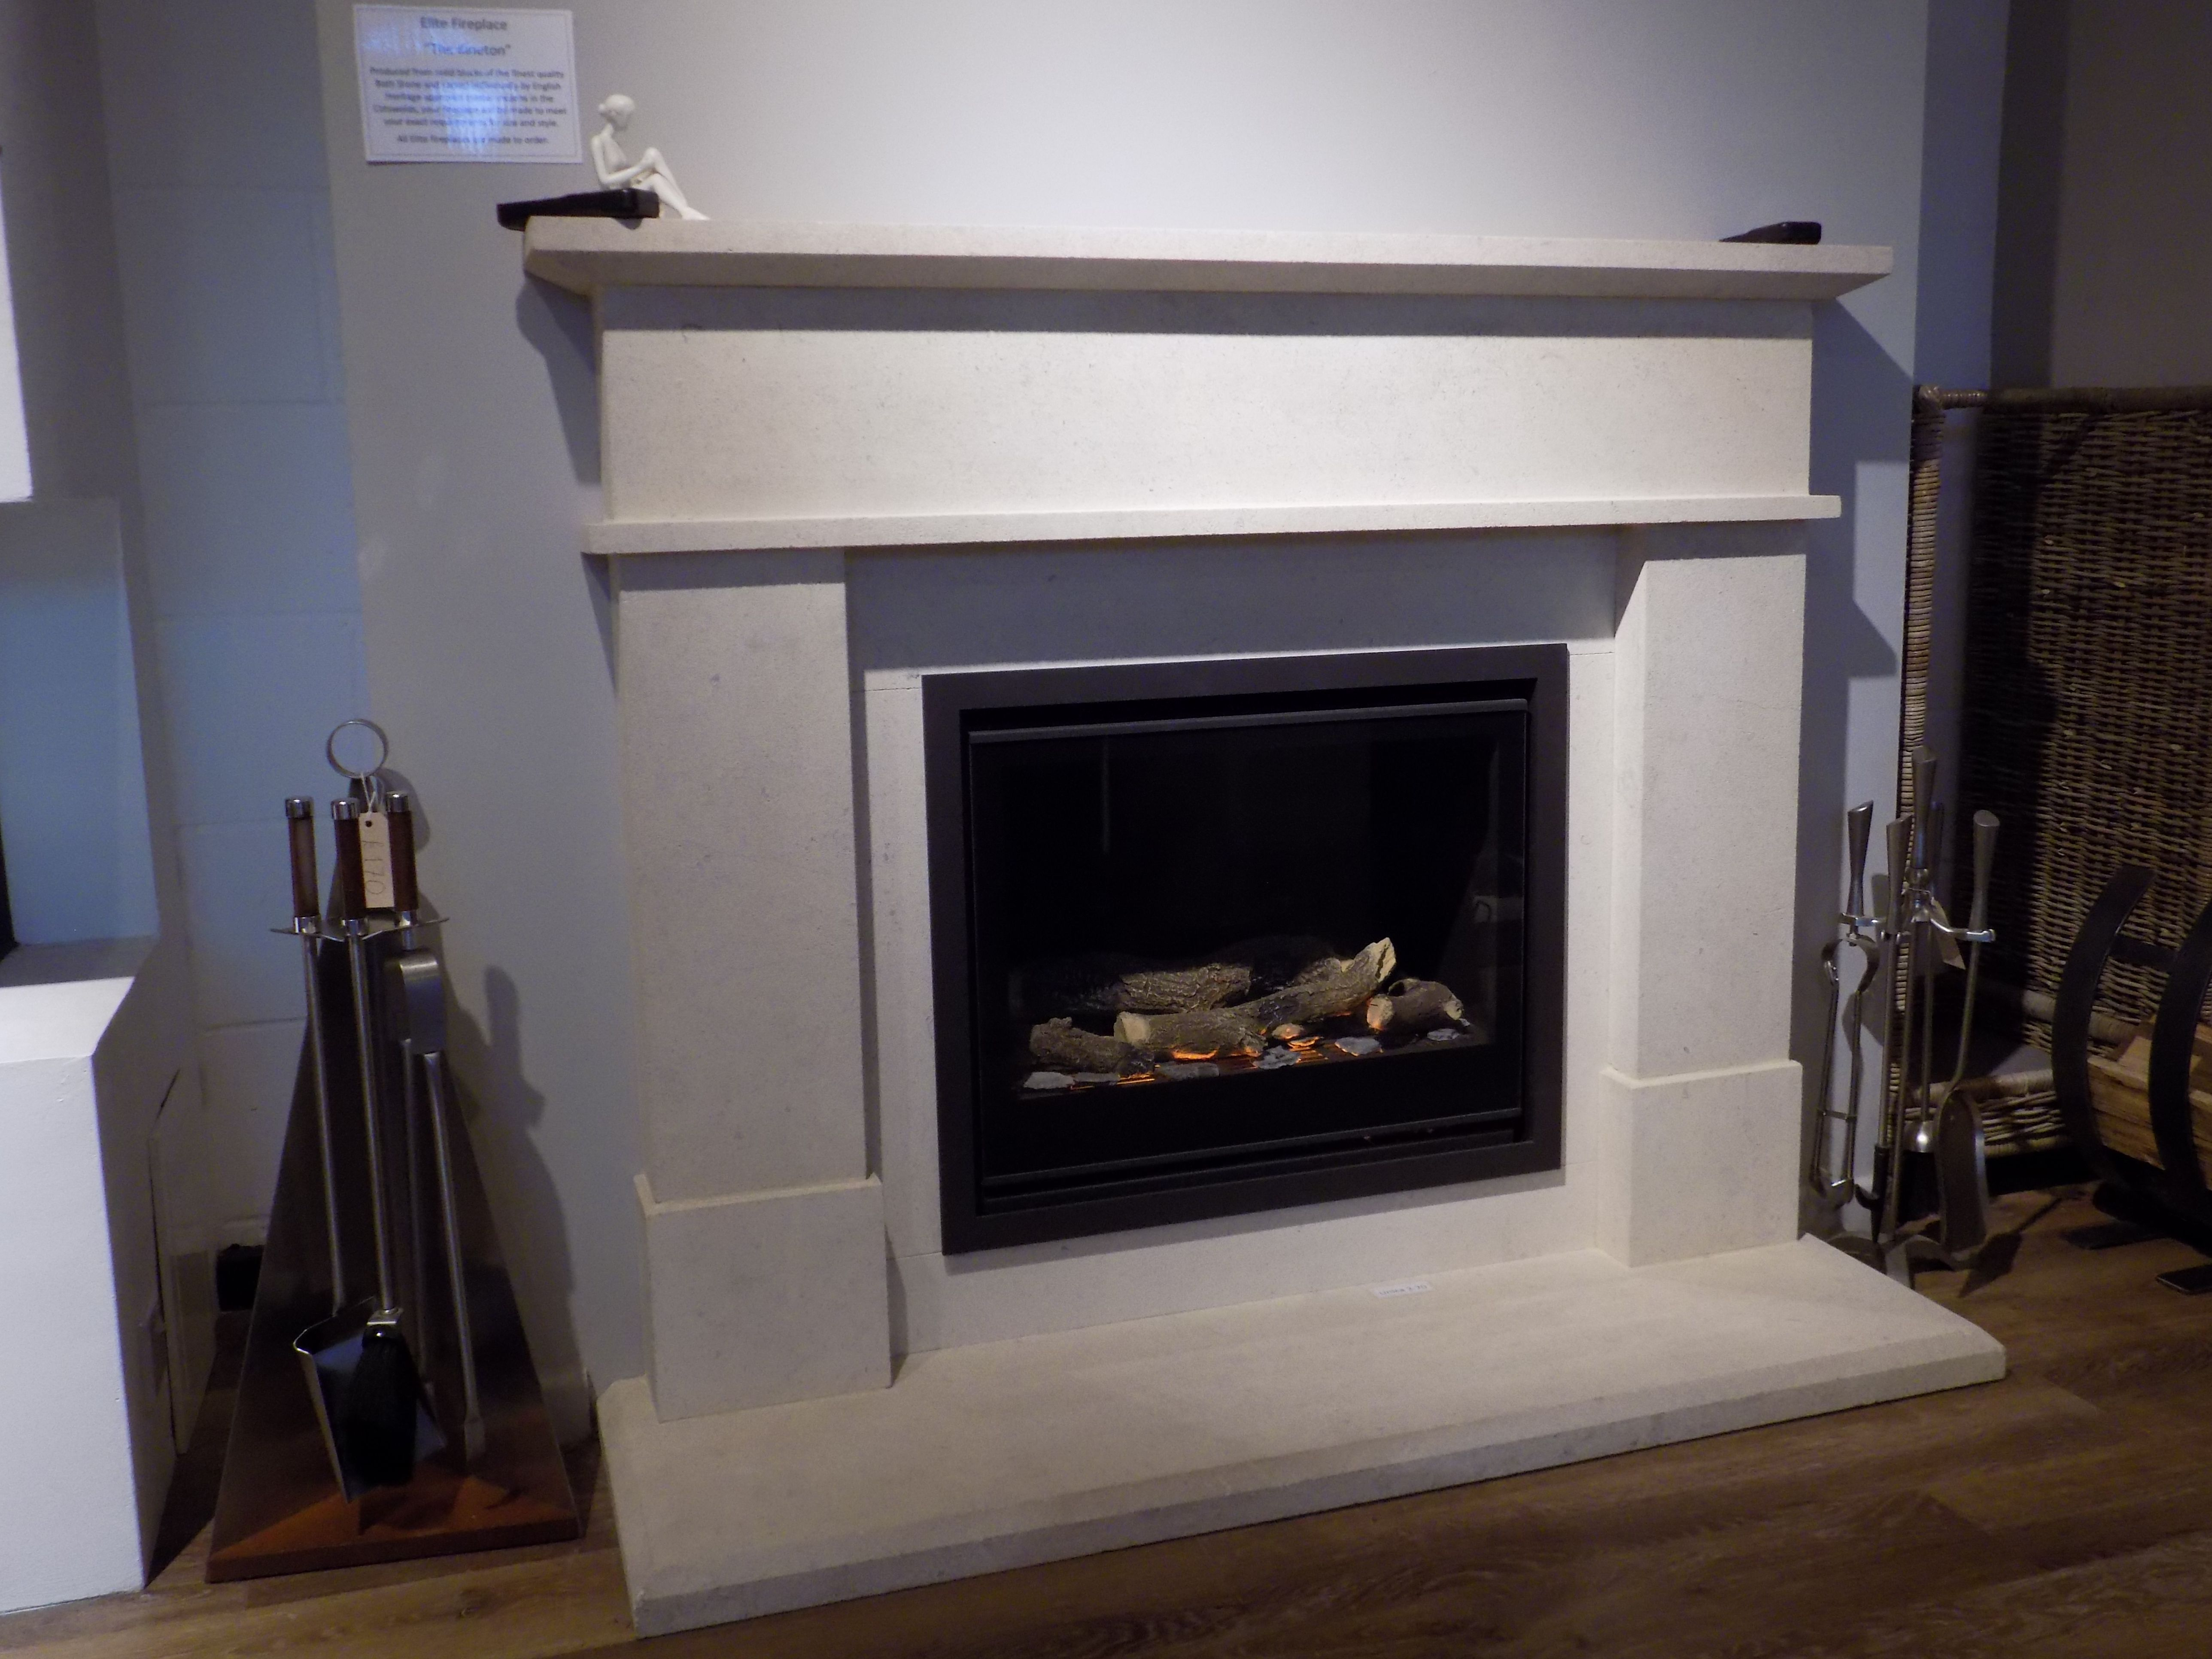 Colnestoves.Bathstone Fireplace. See the new Elite Kineton hand carved fireplace at our new showroom. Call 01284 388188